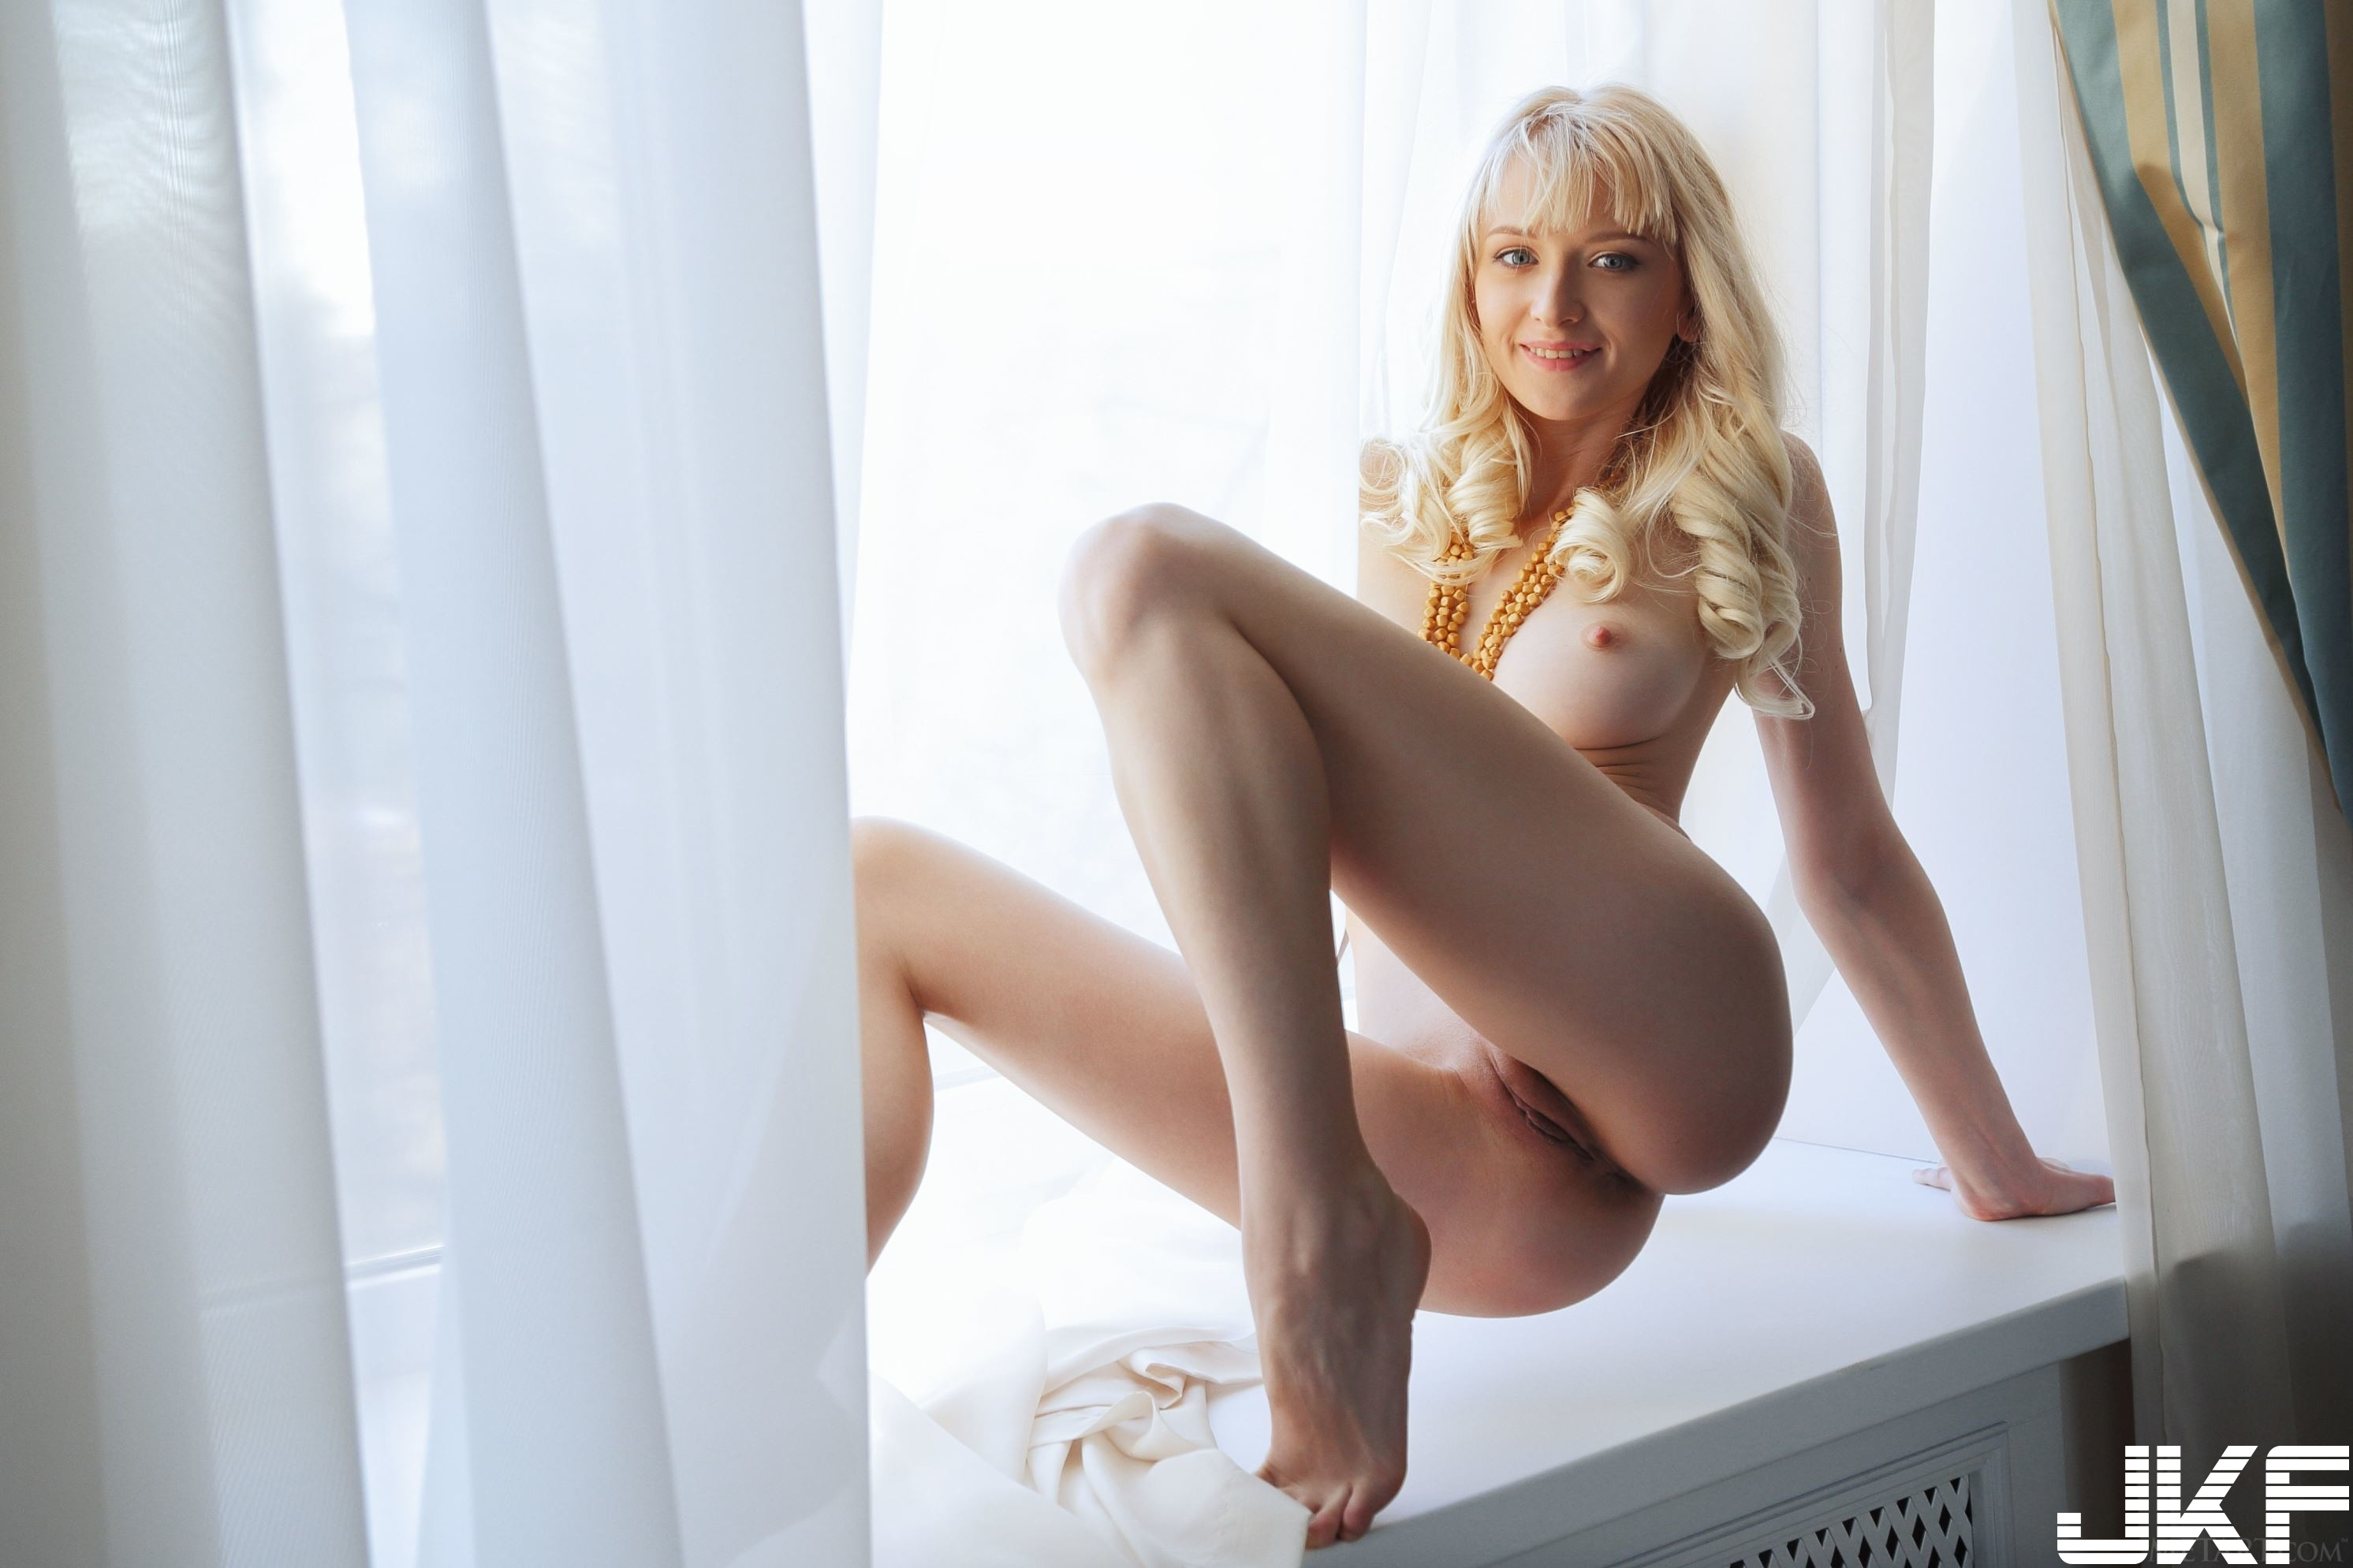 Shaved-Blonde-Adelia-B-with-Plump-Pussy-11.jpg